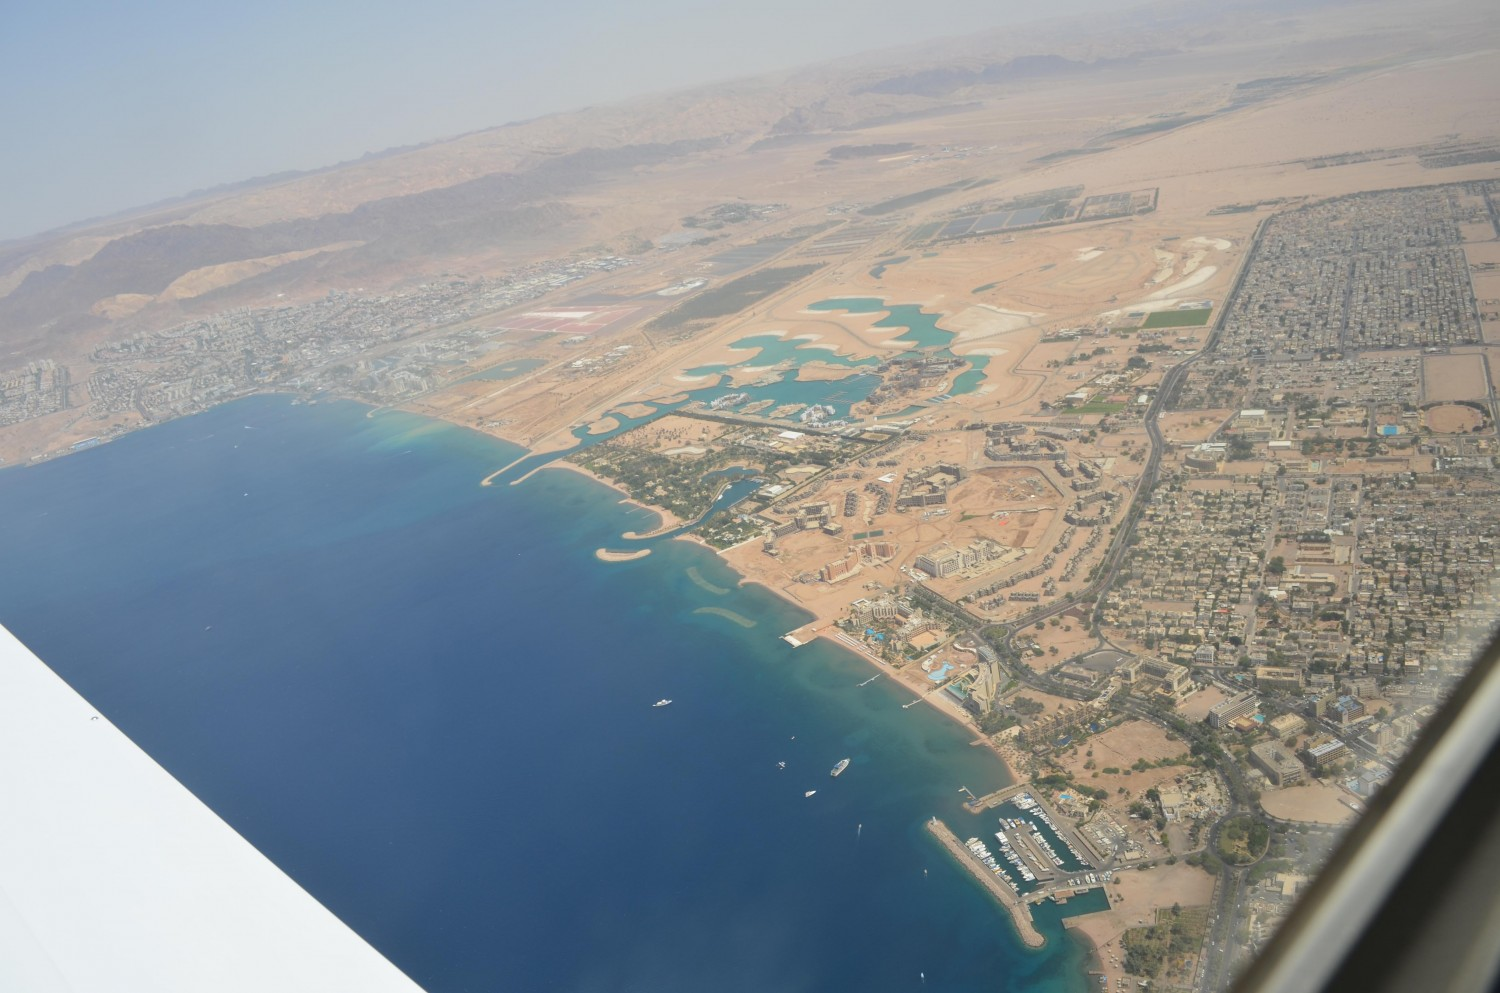 Aqaba vs. Eilat (One City Divided By A Wall)